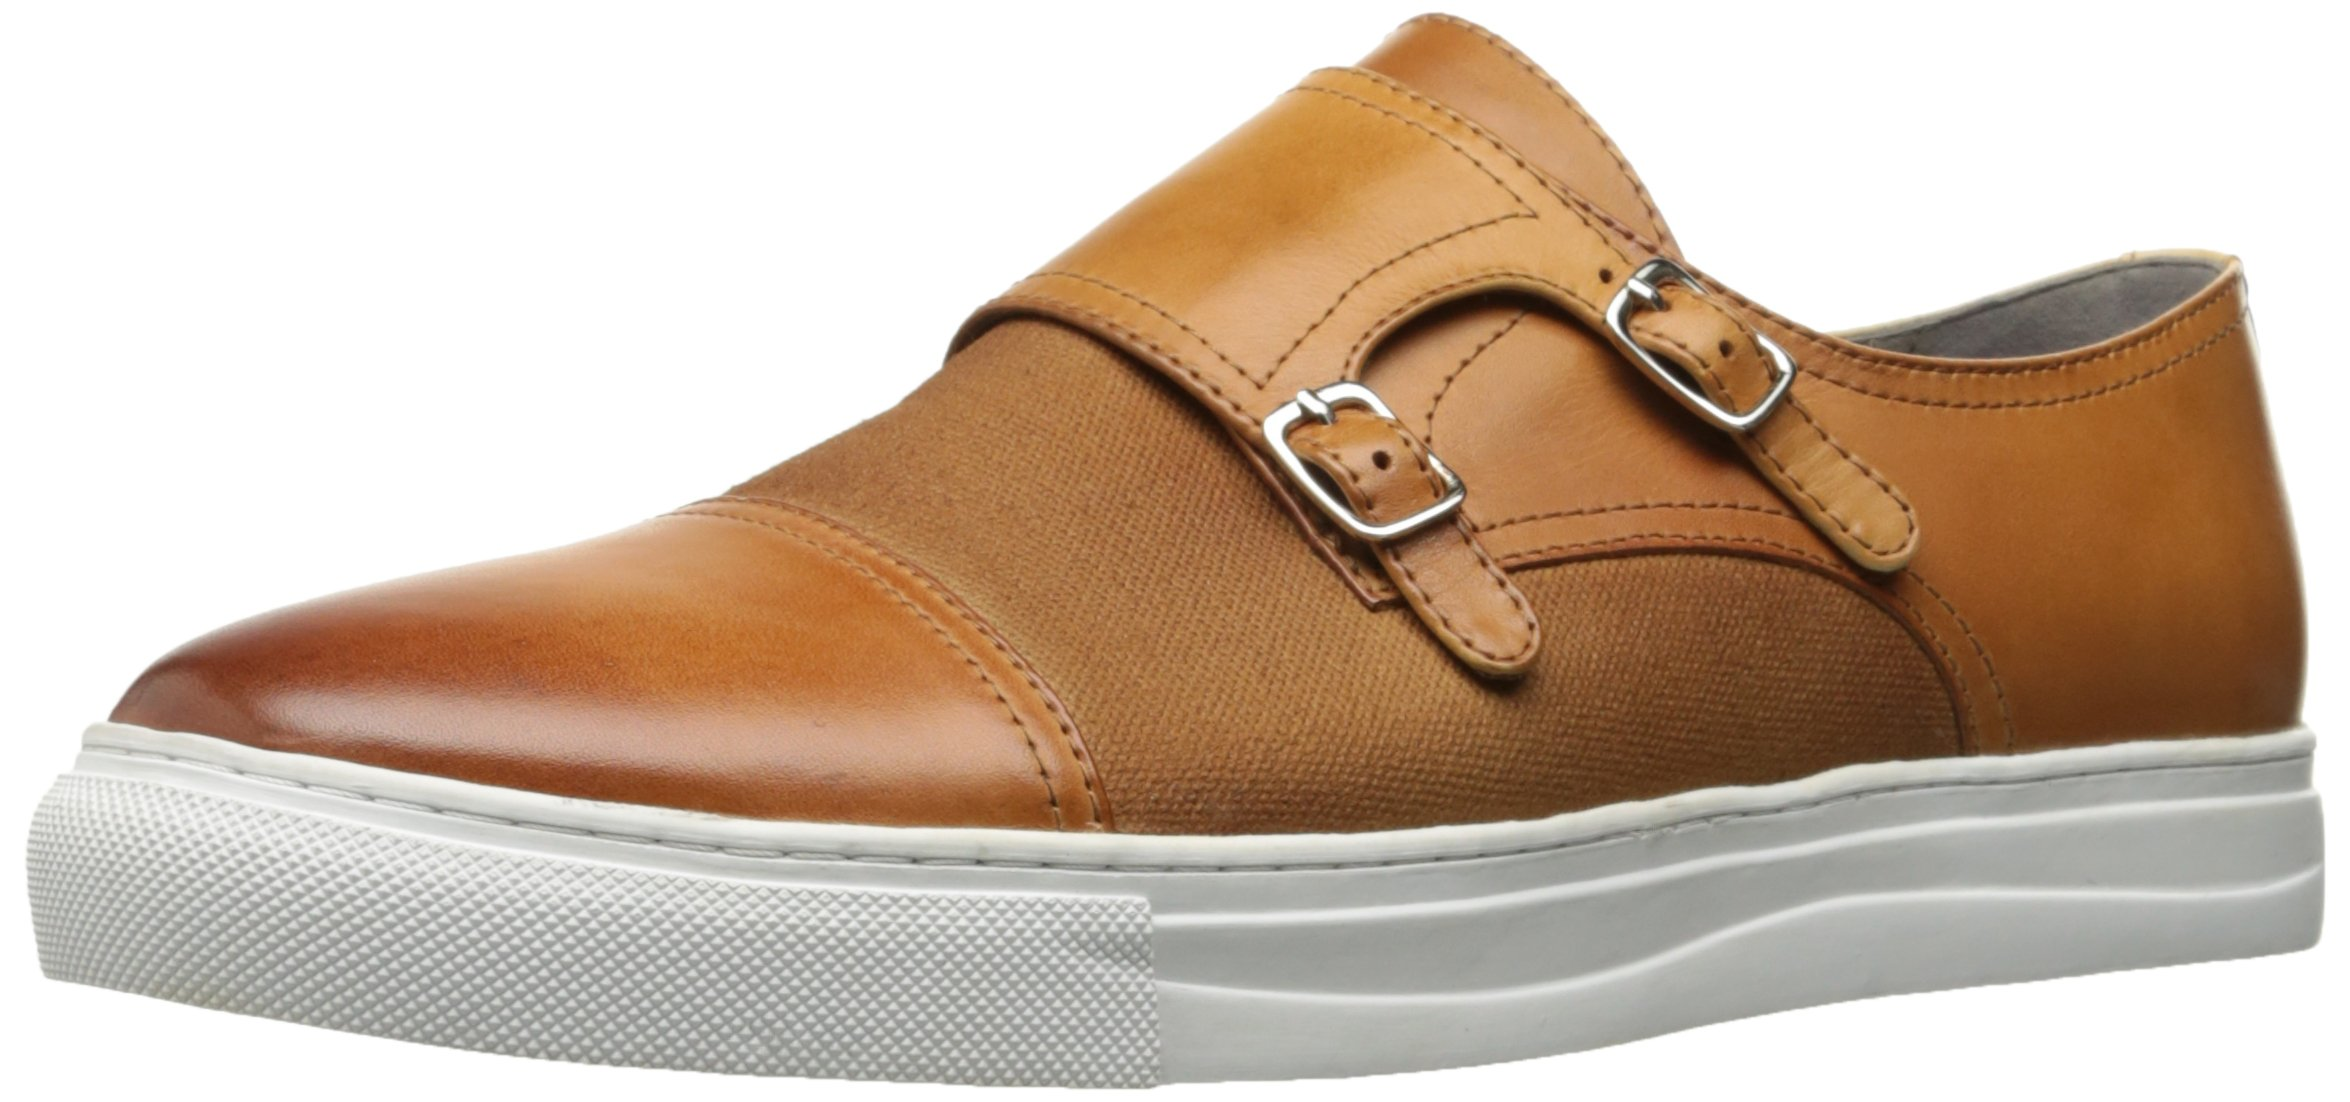 English Laundry Men's Finchley Slip-On Loafer, Cognac, 10 M US